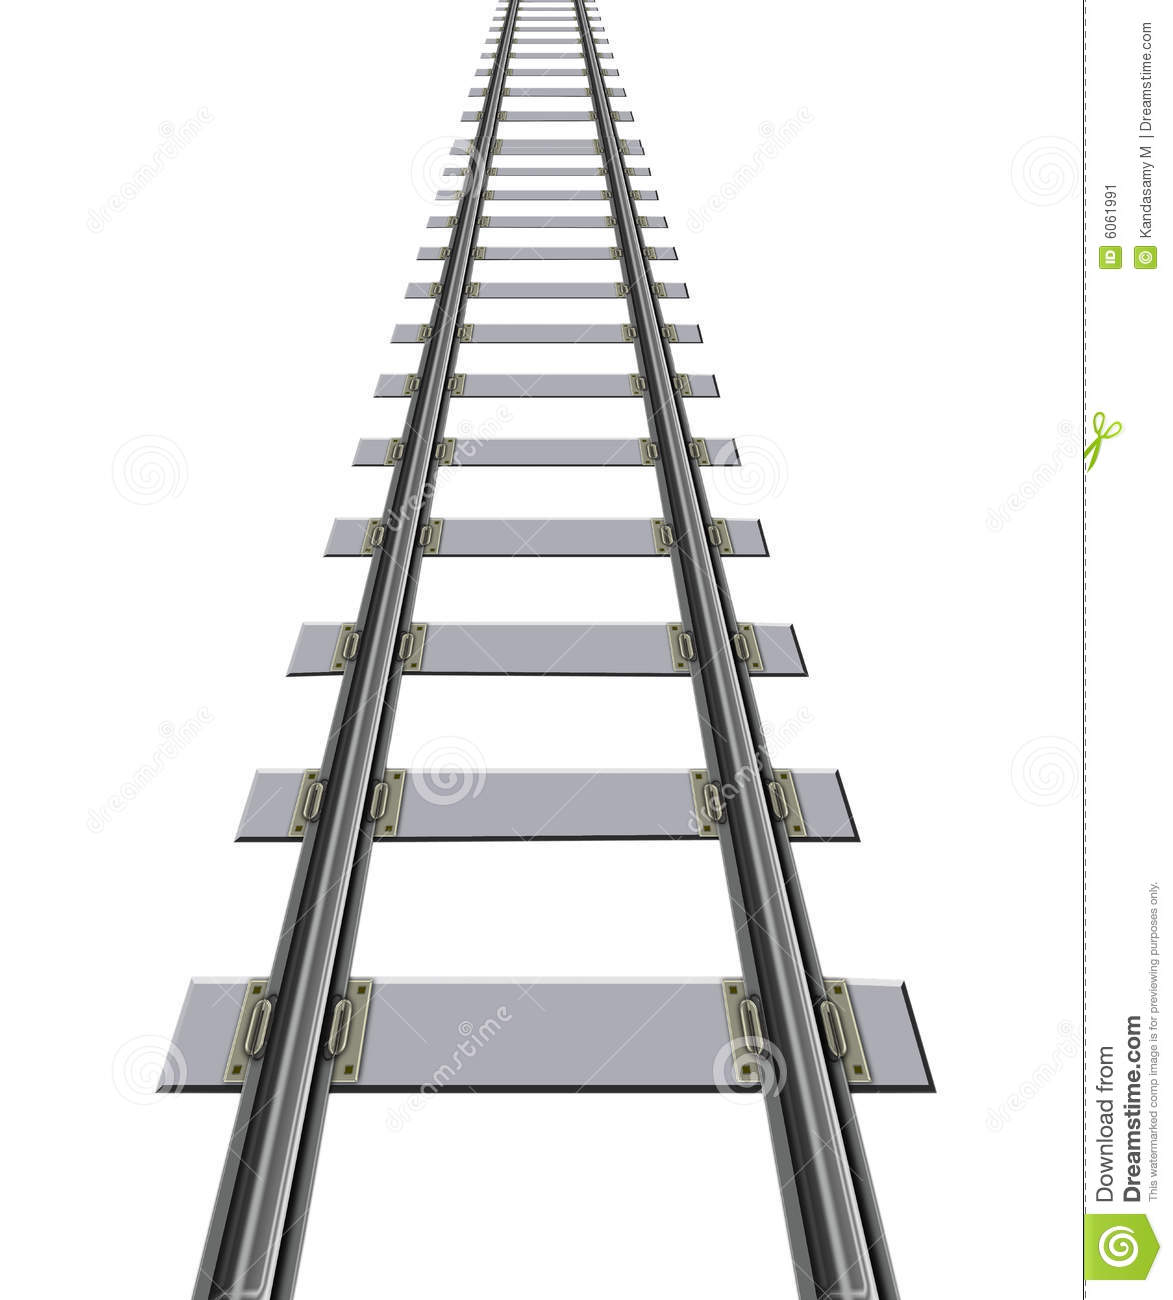 Train Track Clipart - Clipart Suggest